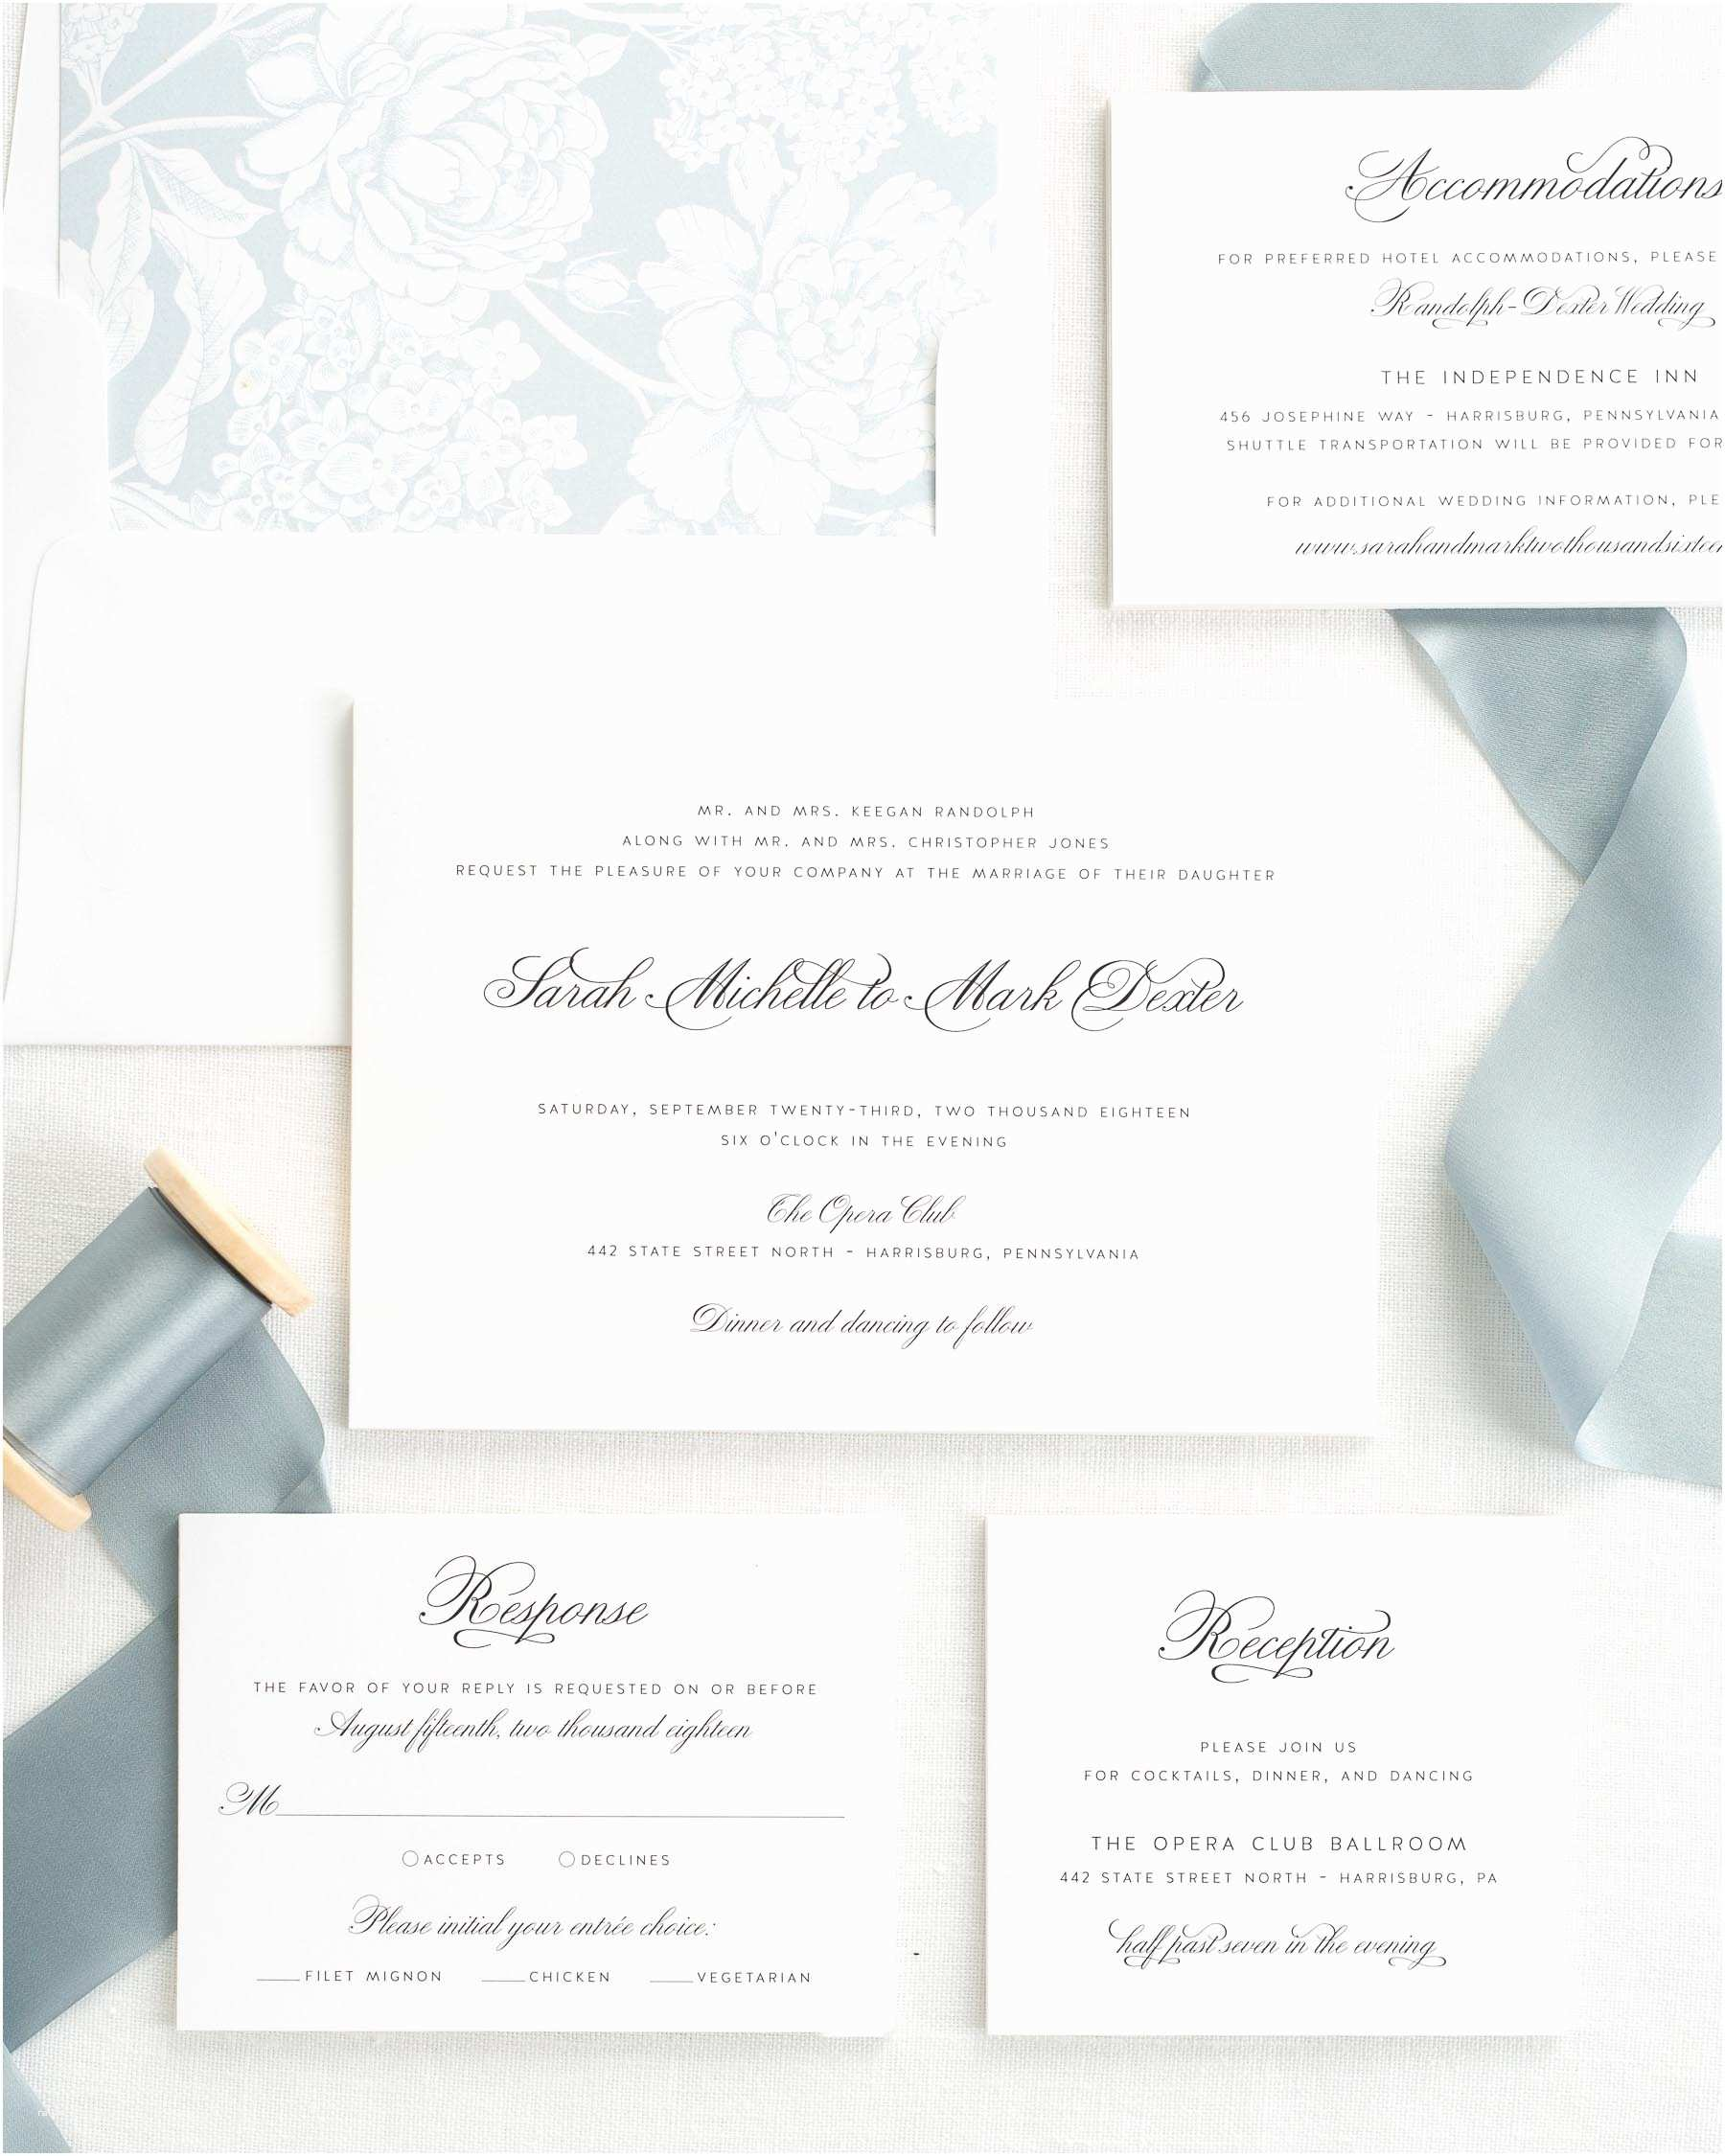 1940s ribbon wedding invitations